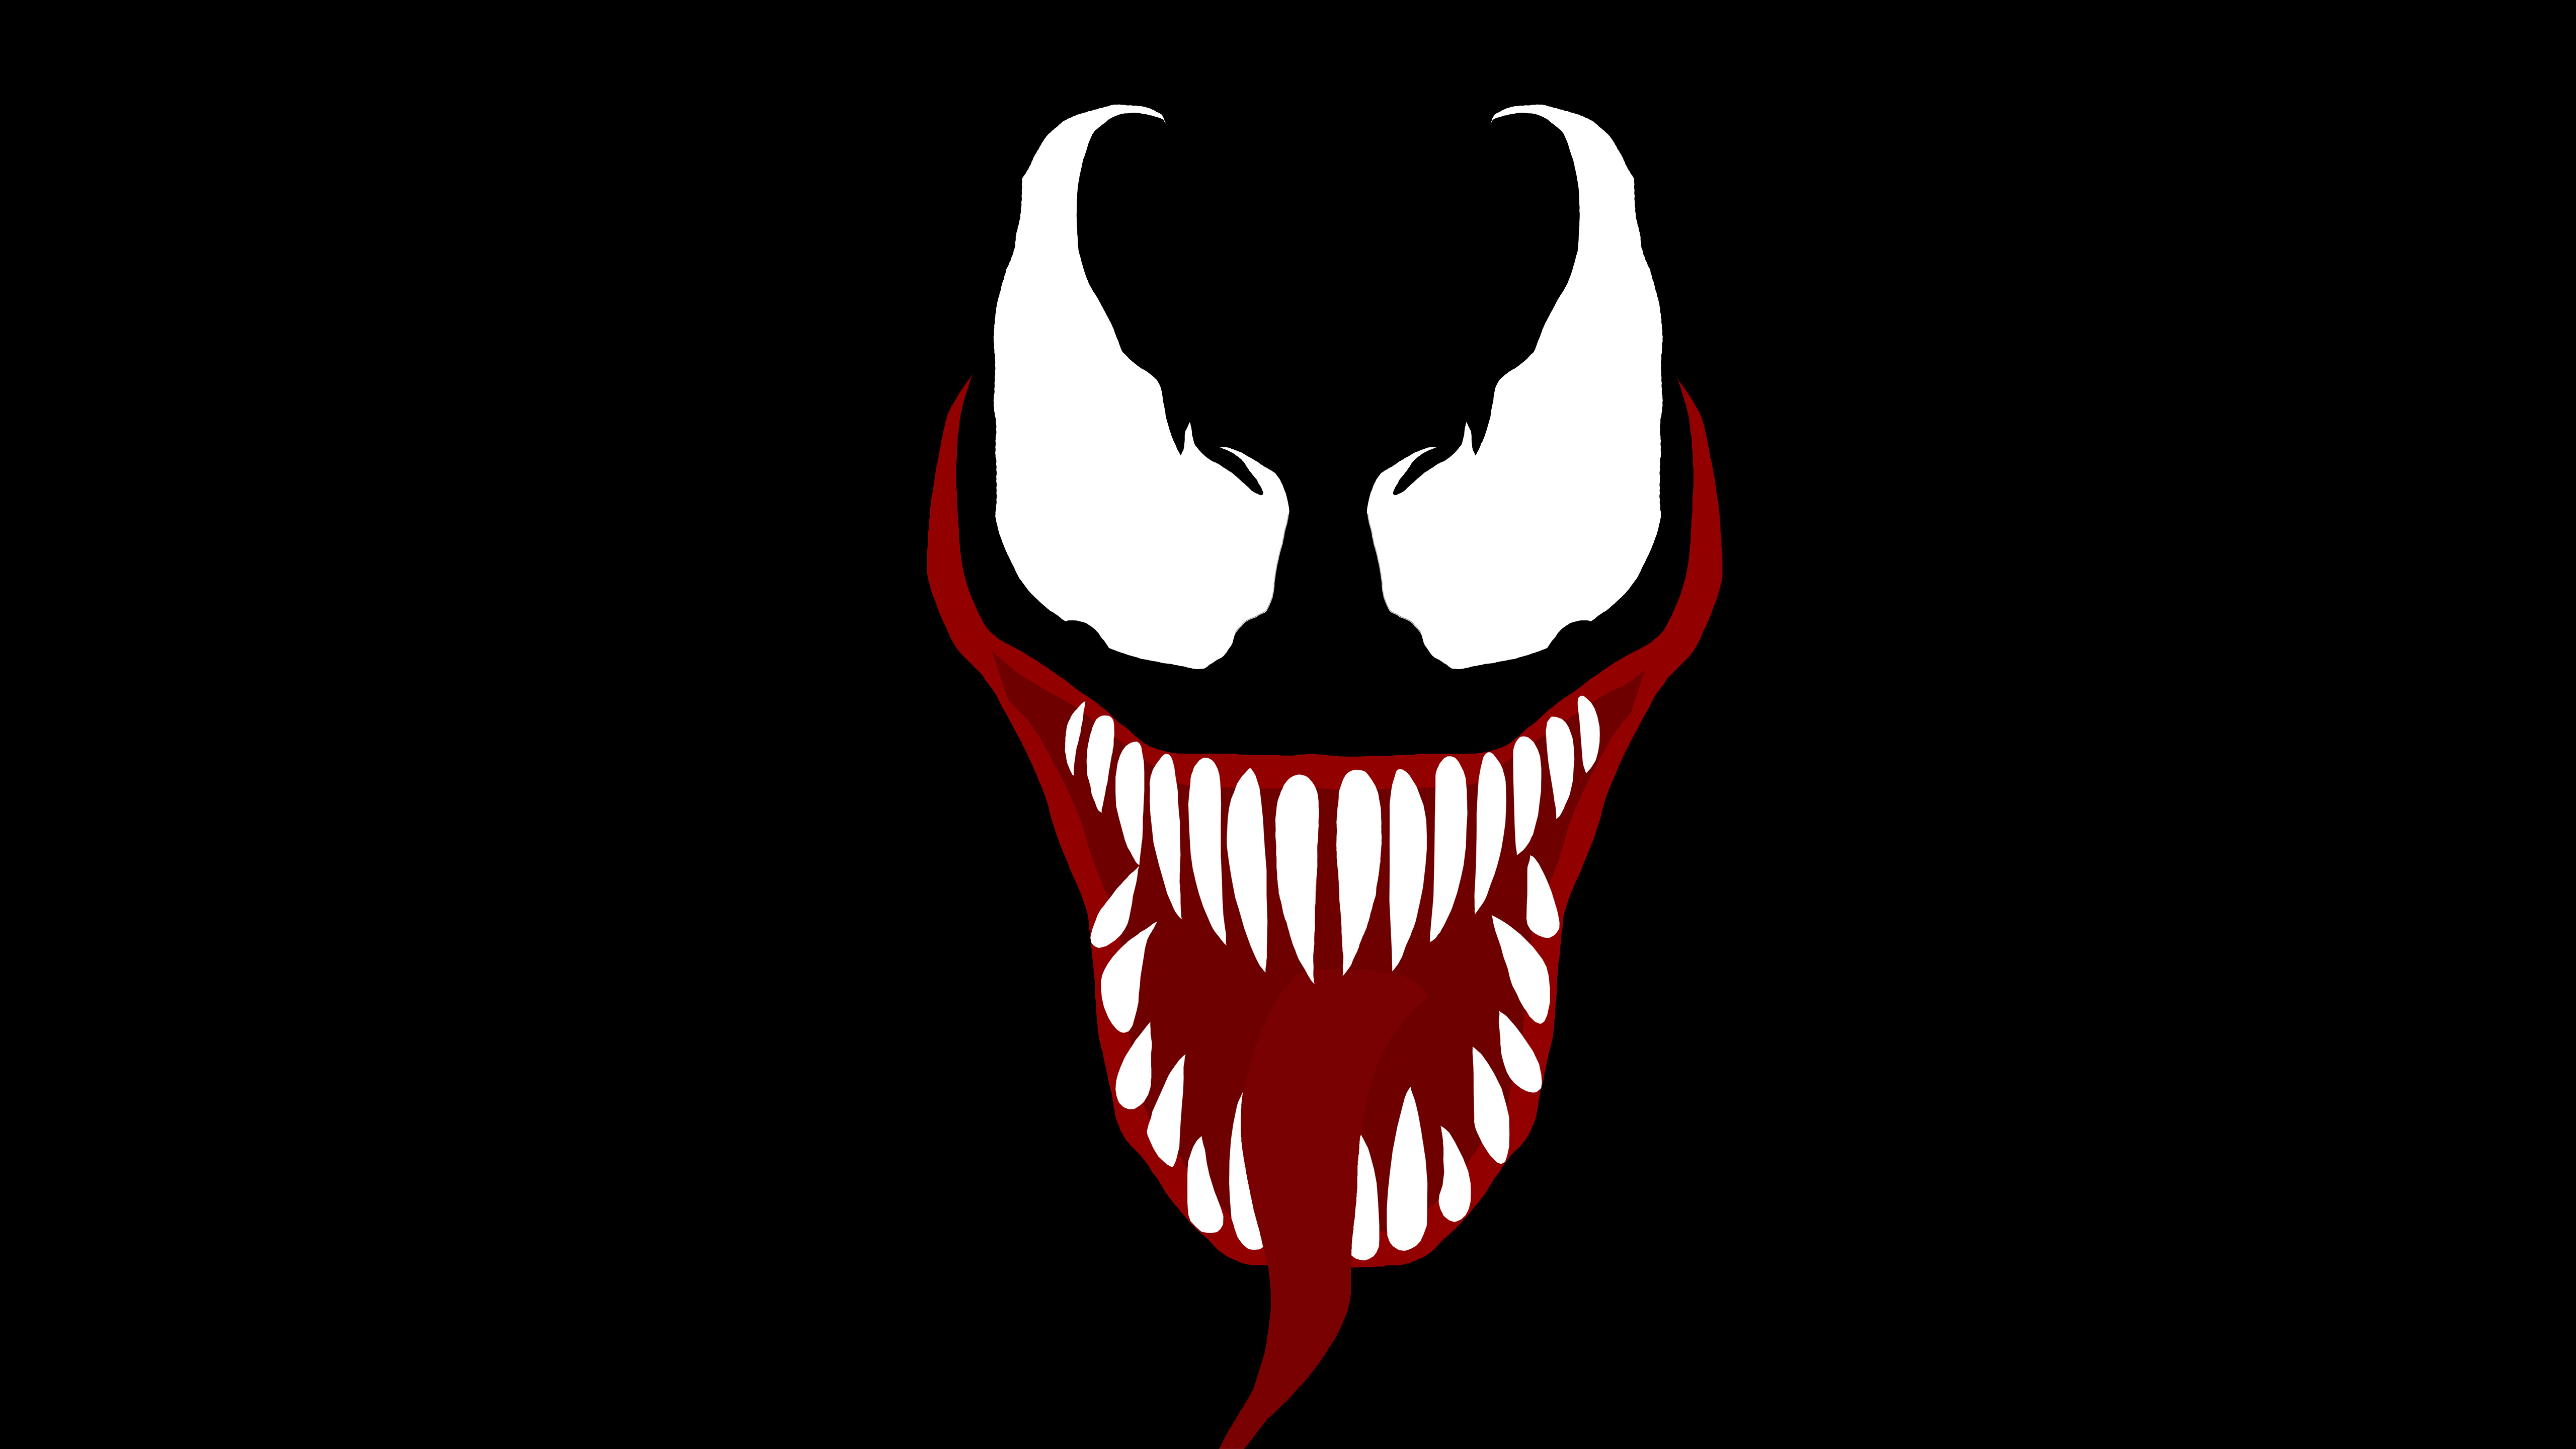 Marvel Superheroes 3d Wallpapers Venom Movie Face Hd Movies 4k Wallpapers Images